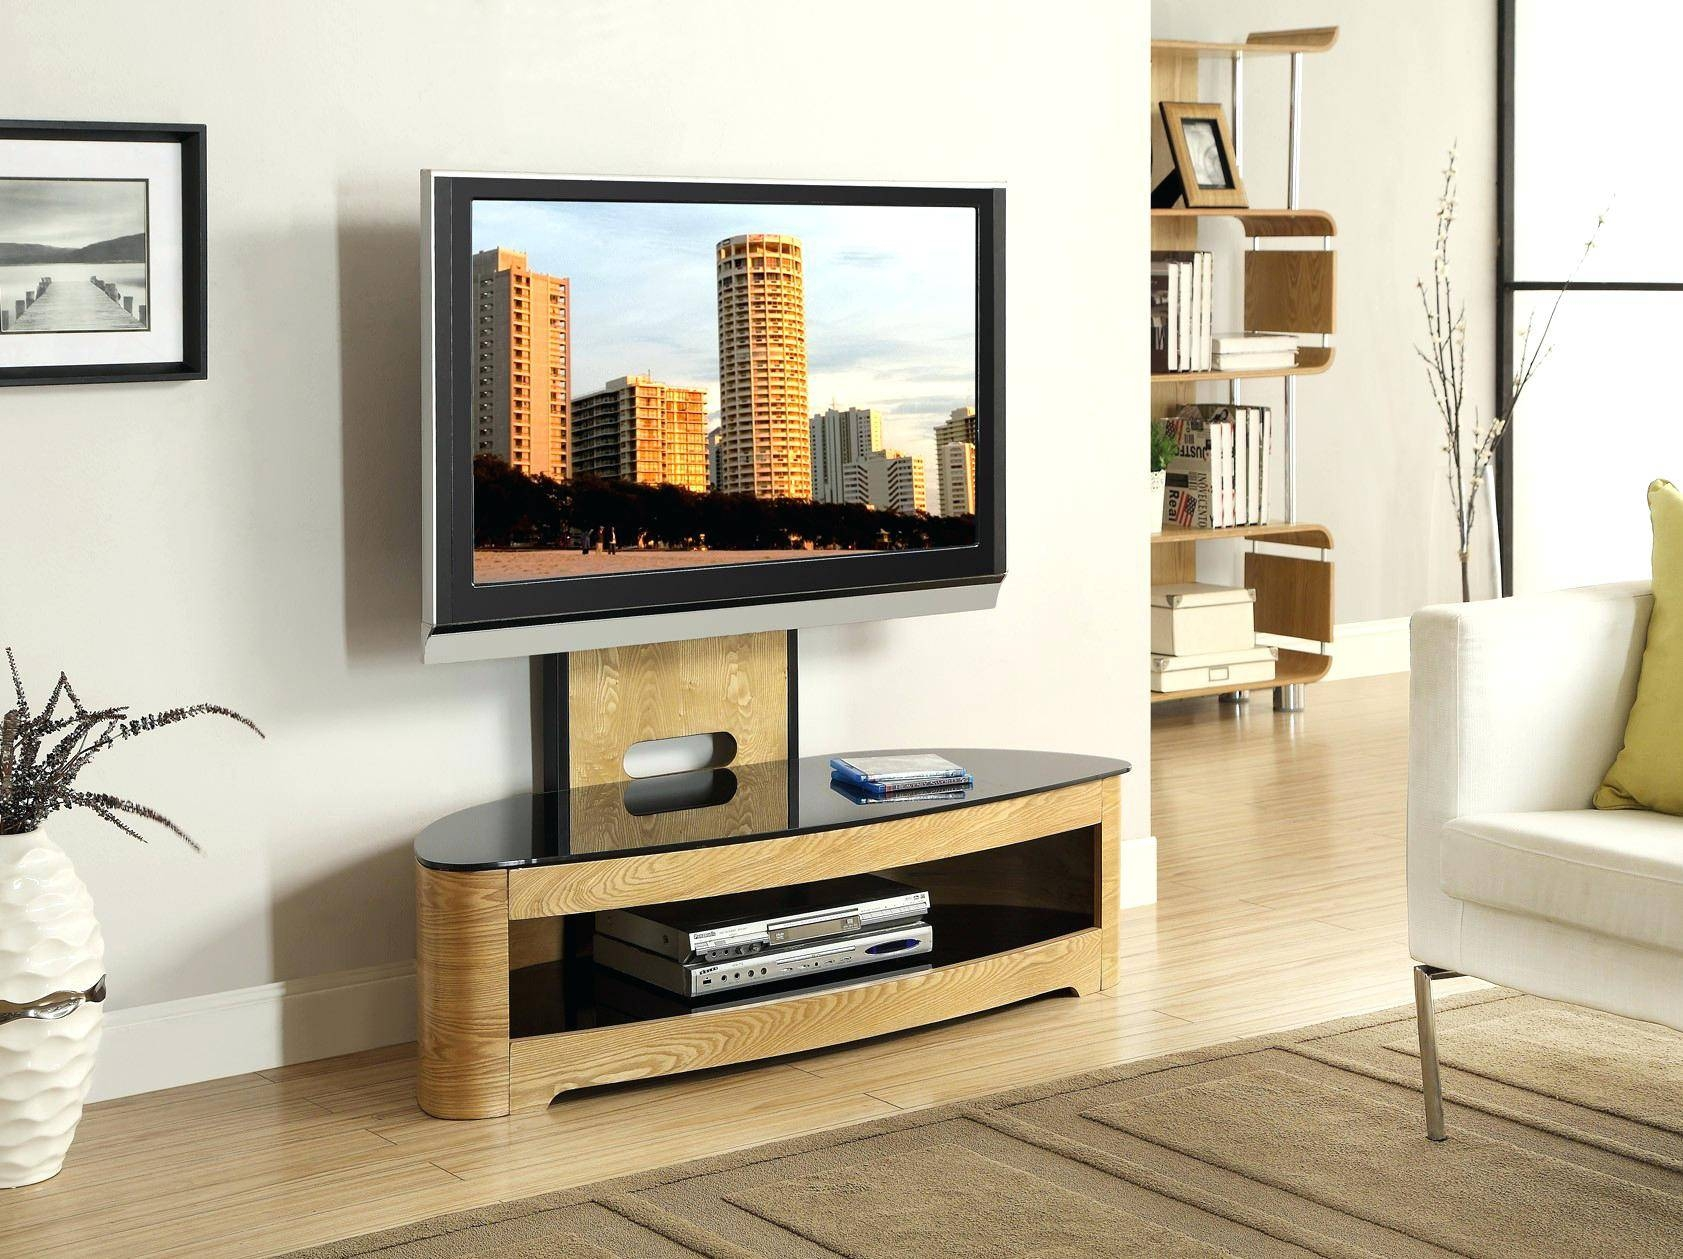 Tv Stand : Tv Stands Tv Stand Oak Oak Tv Stands For Flat Screen in Light Oak Tv Stands Flat Screen (Image 13 of 15)